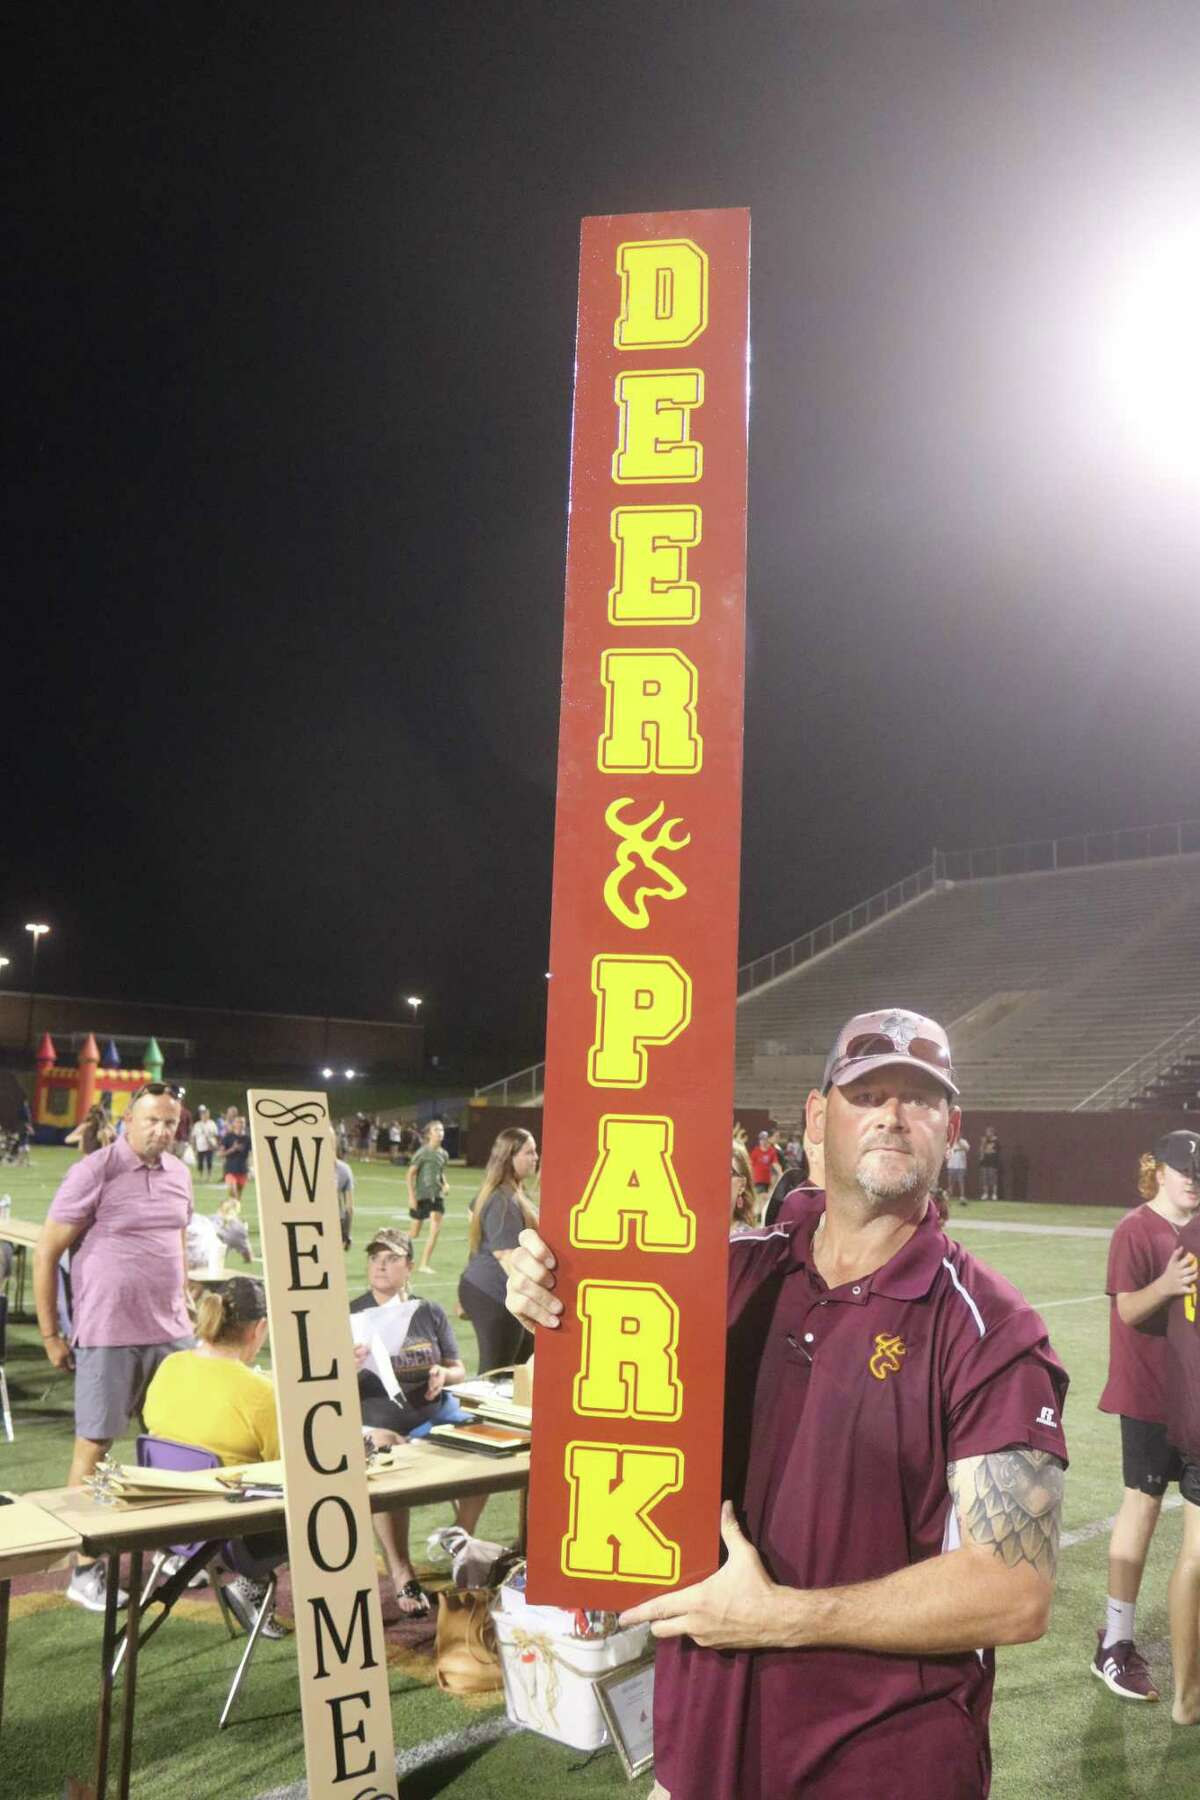 If it had anything to do with Deer Park, it was on the auction block last Saturday night during the Meet the Team festivities at Clyde Abshier Stadium.